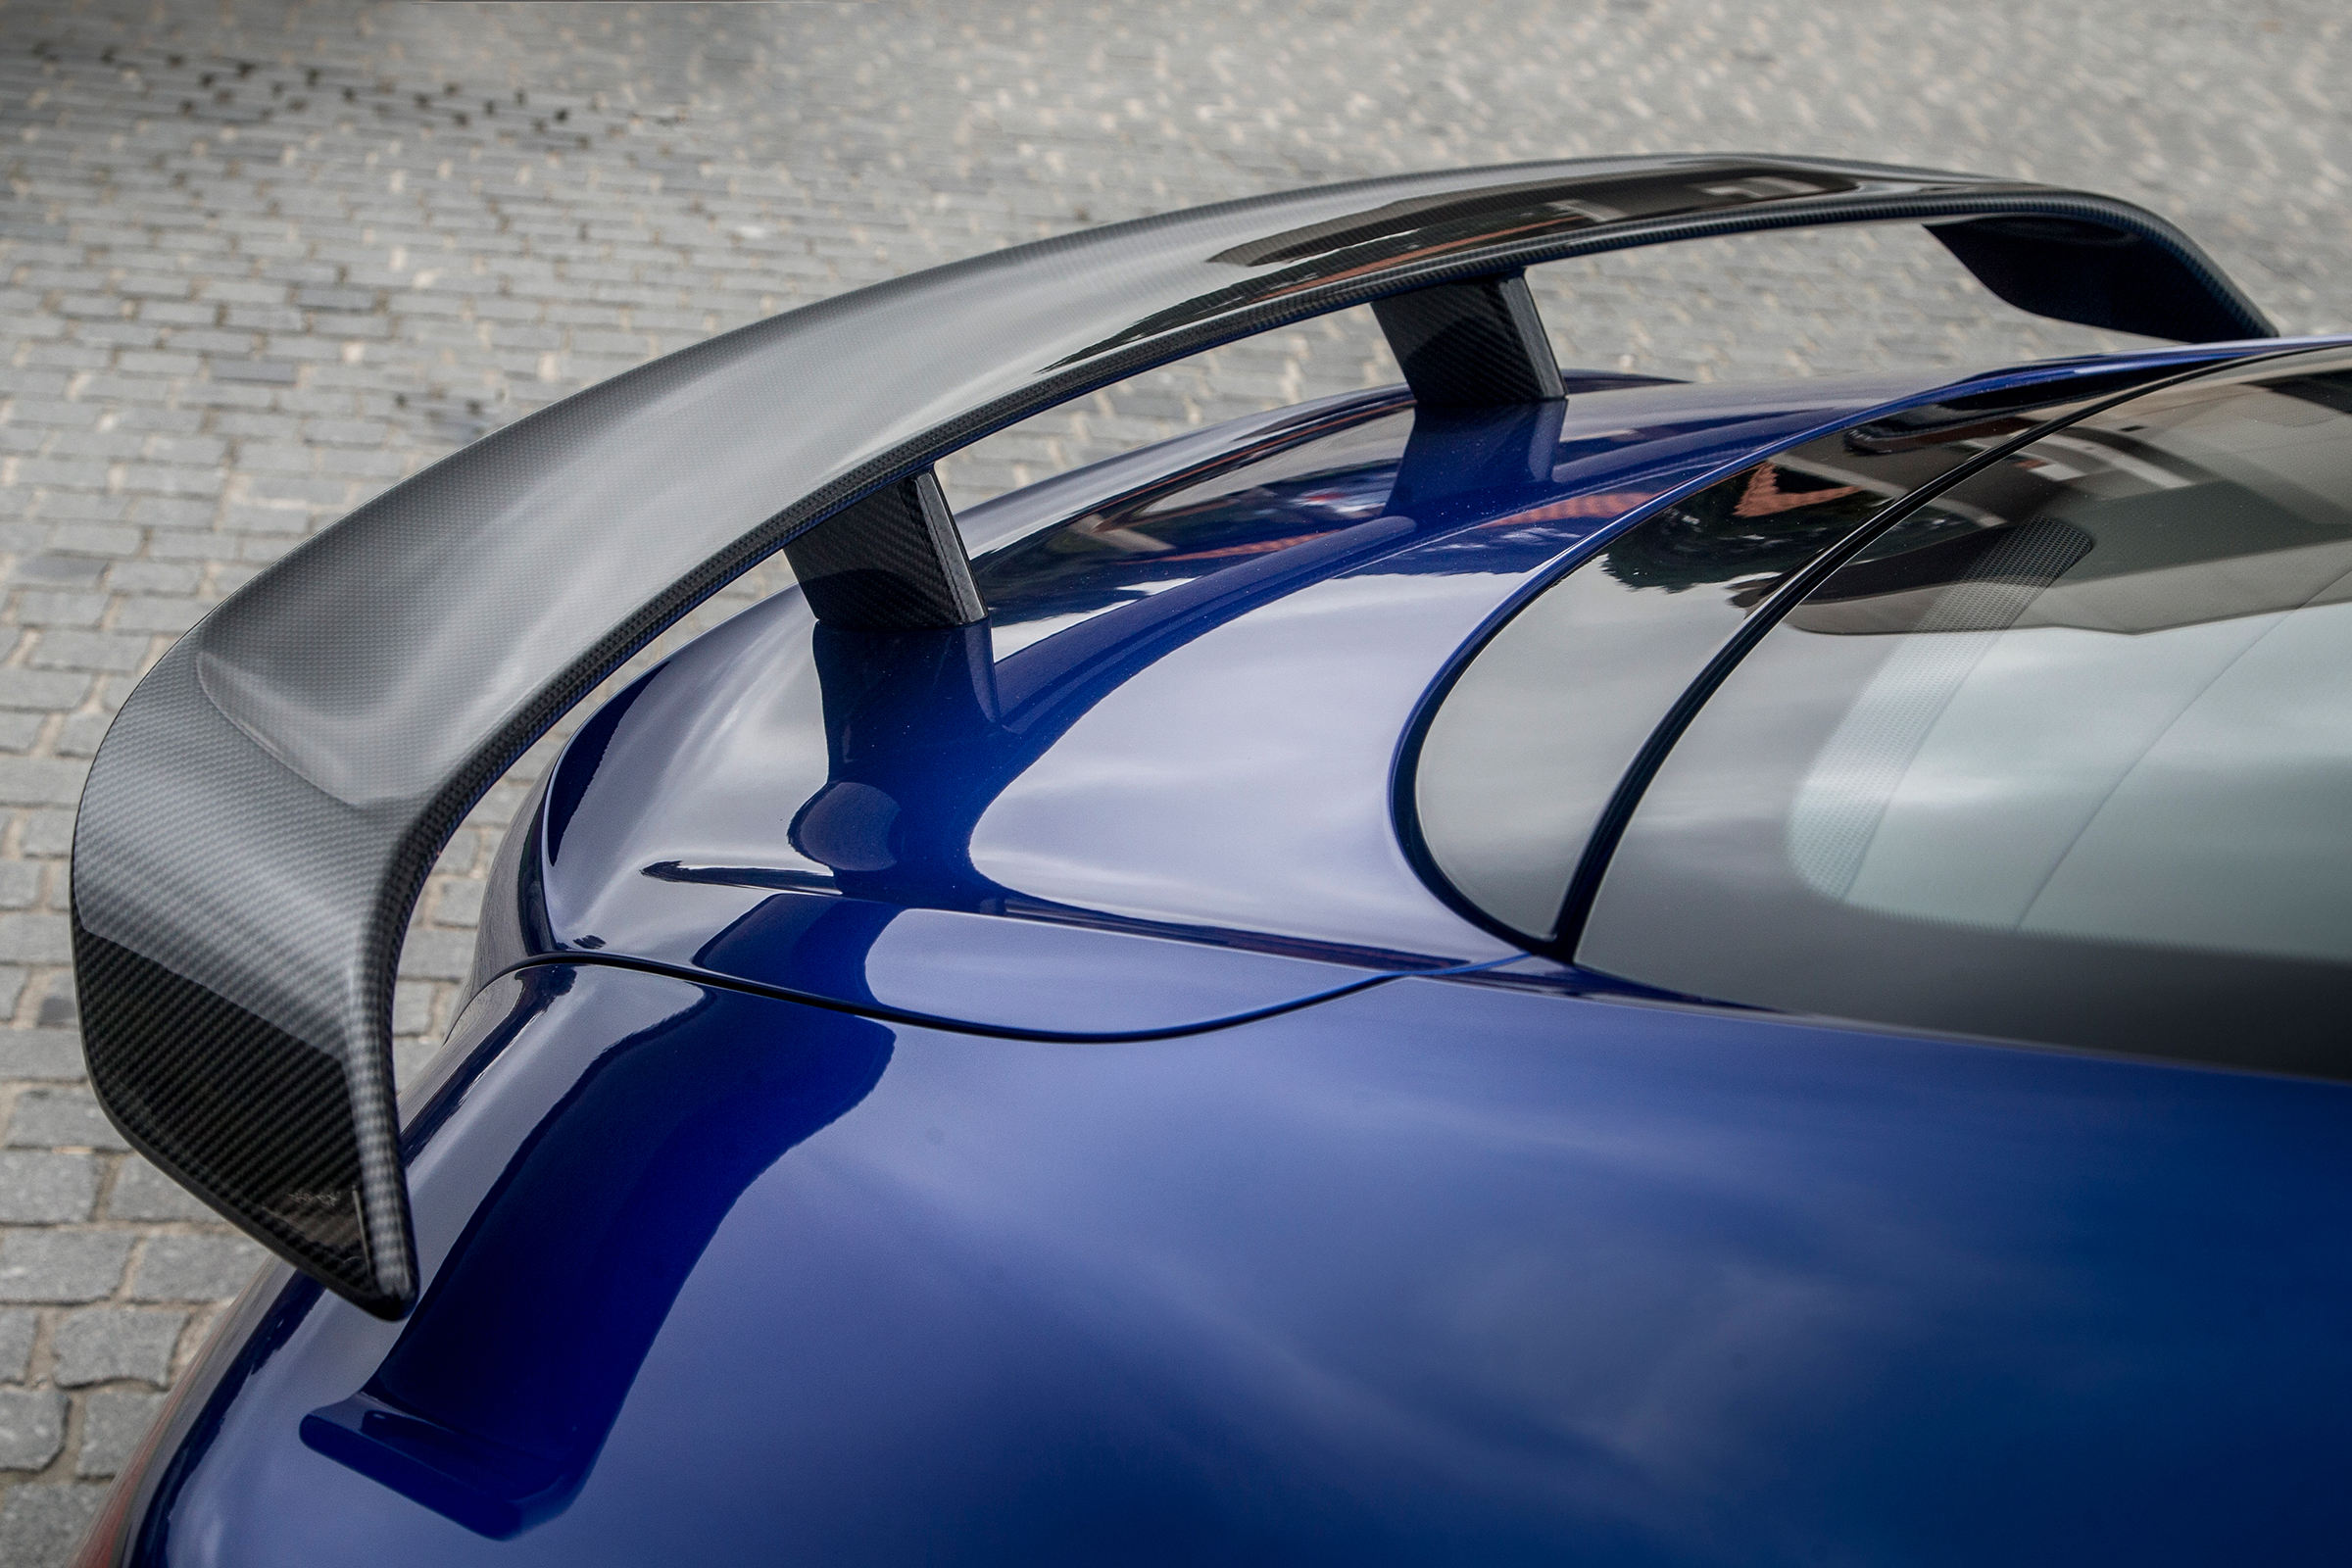 2017 Bentley Continental Supersports Blue Exterior View Rear Wing (Photo 17 of 31)